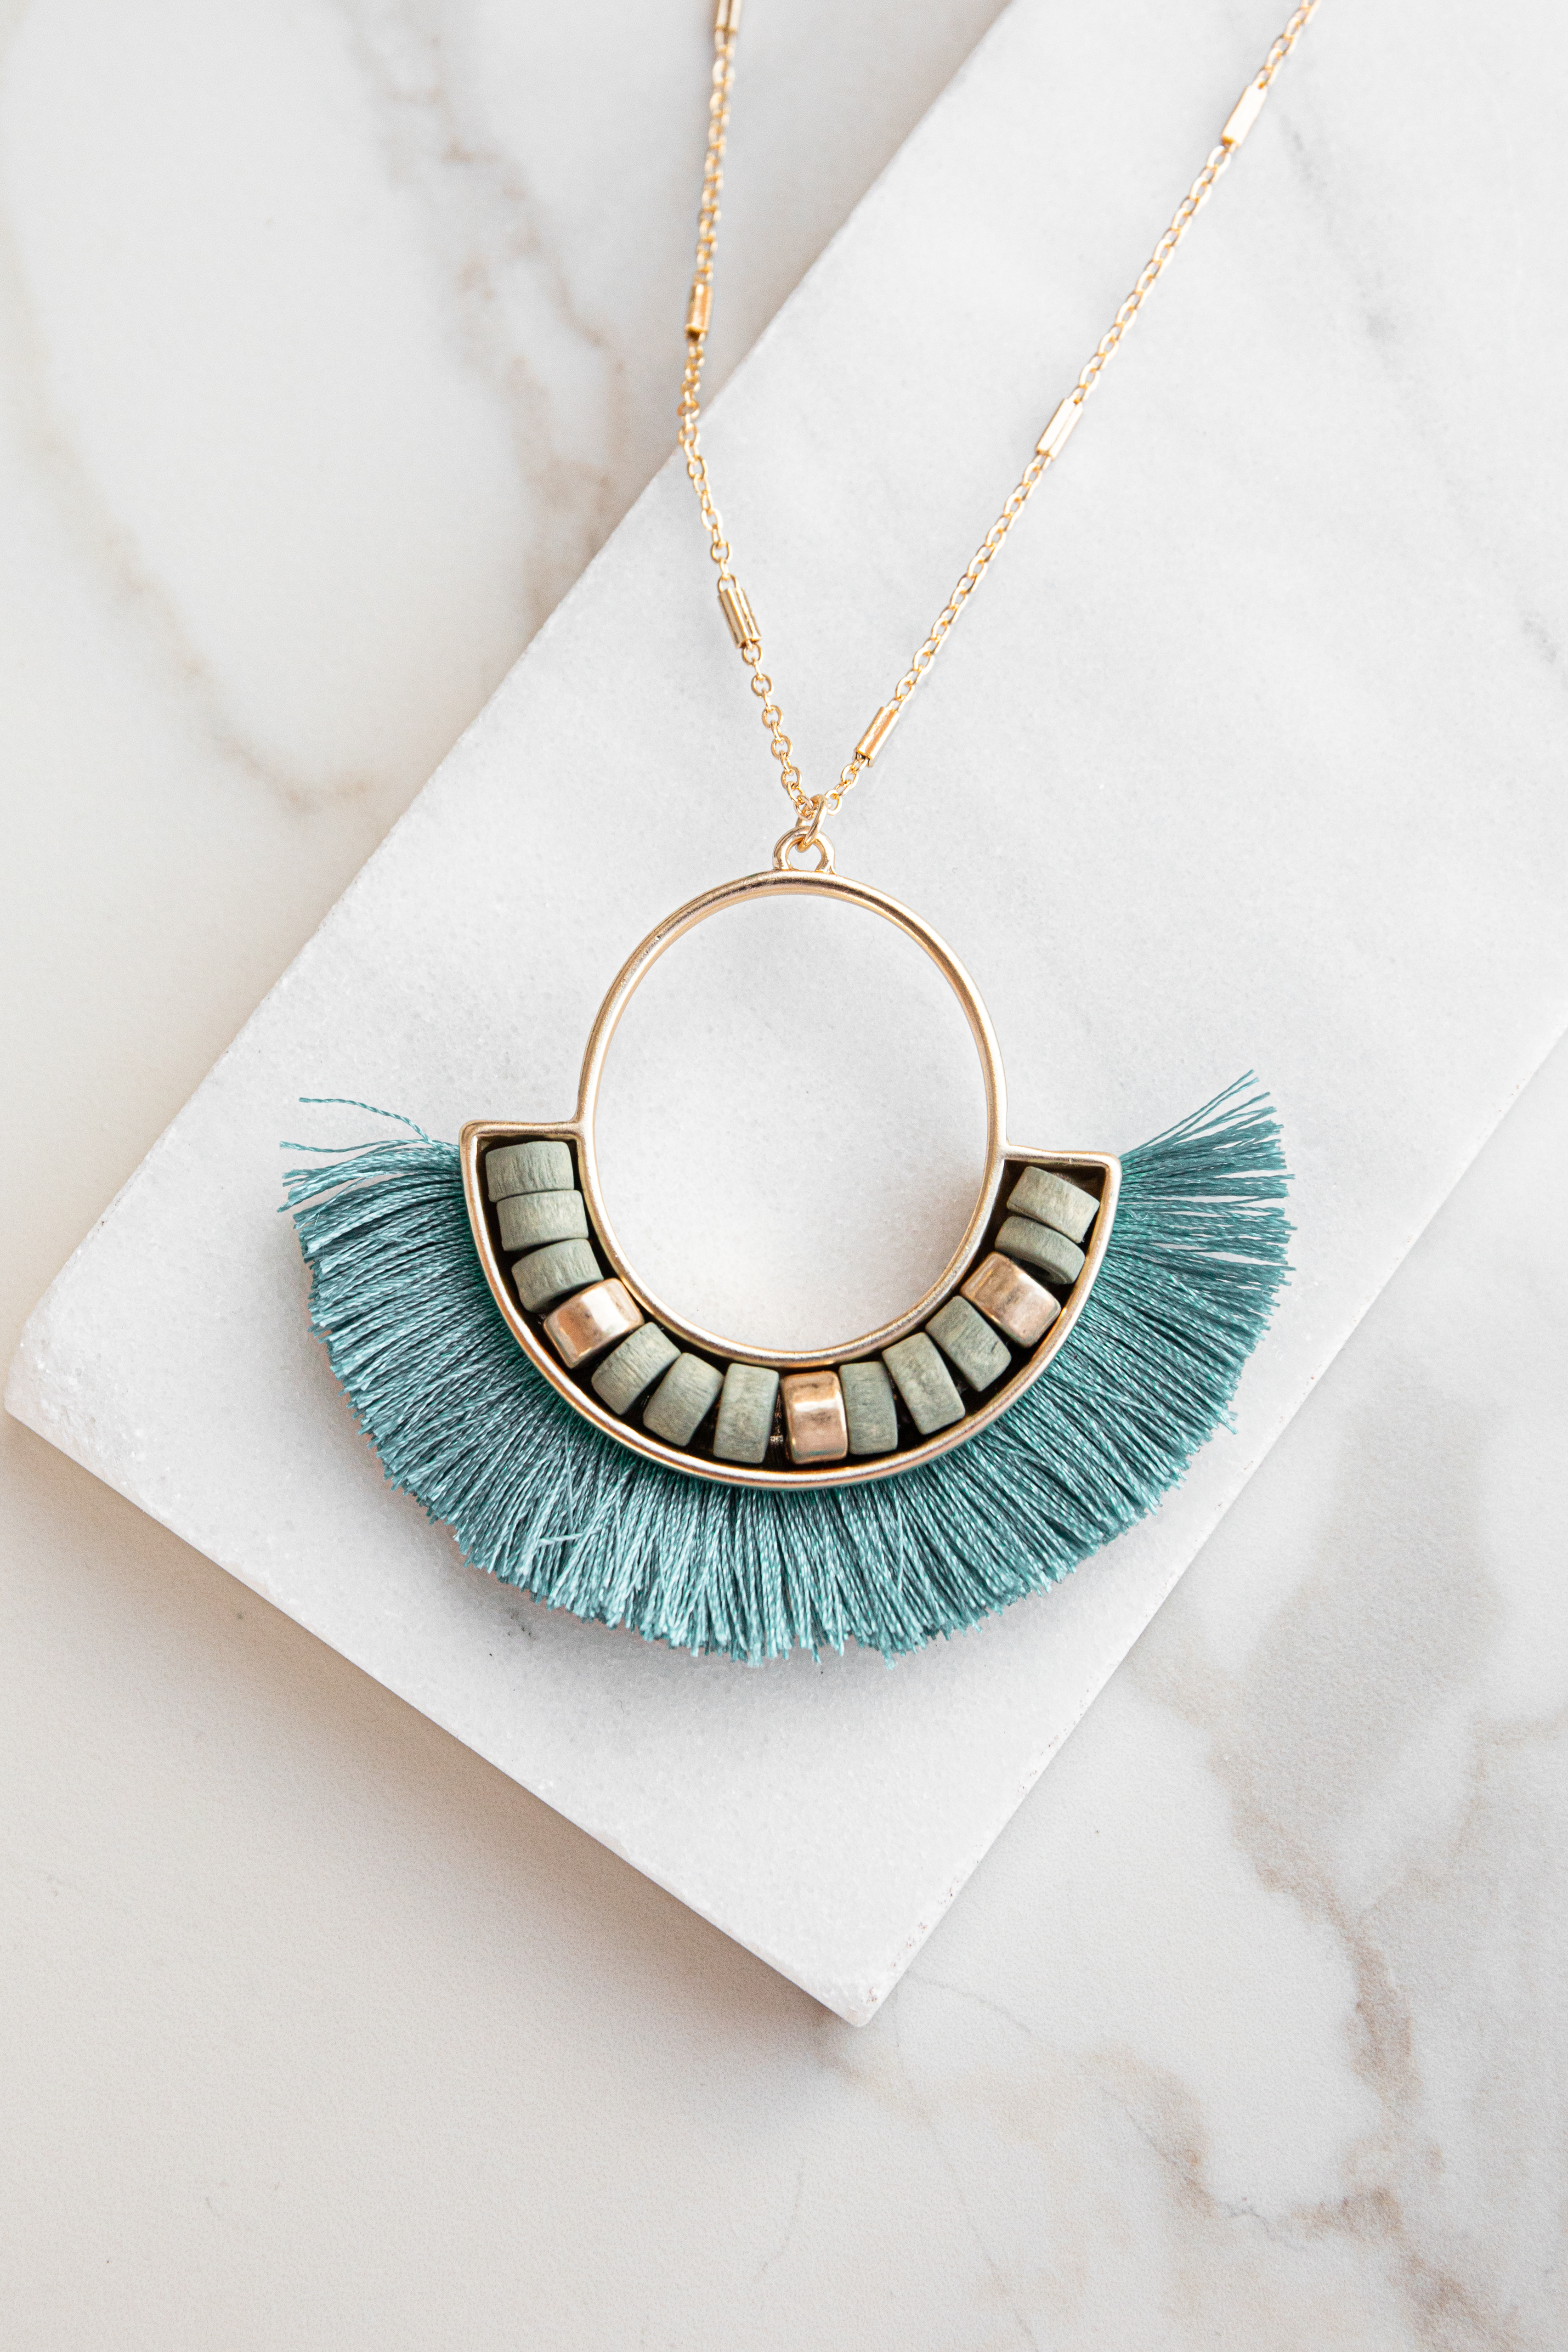 Gold Circle Pendant Long Necklace with Teal Tassel Details